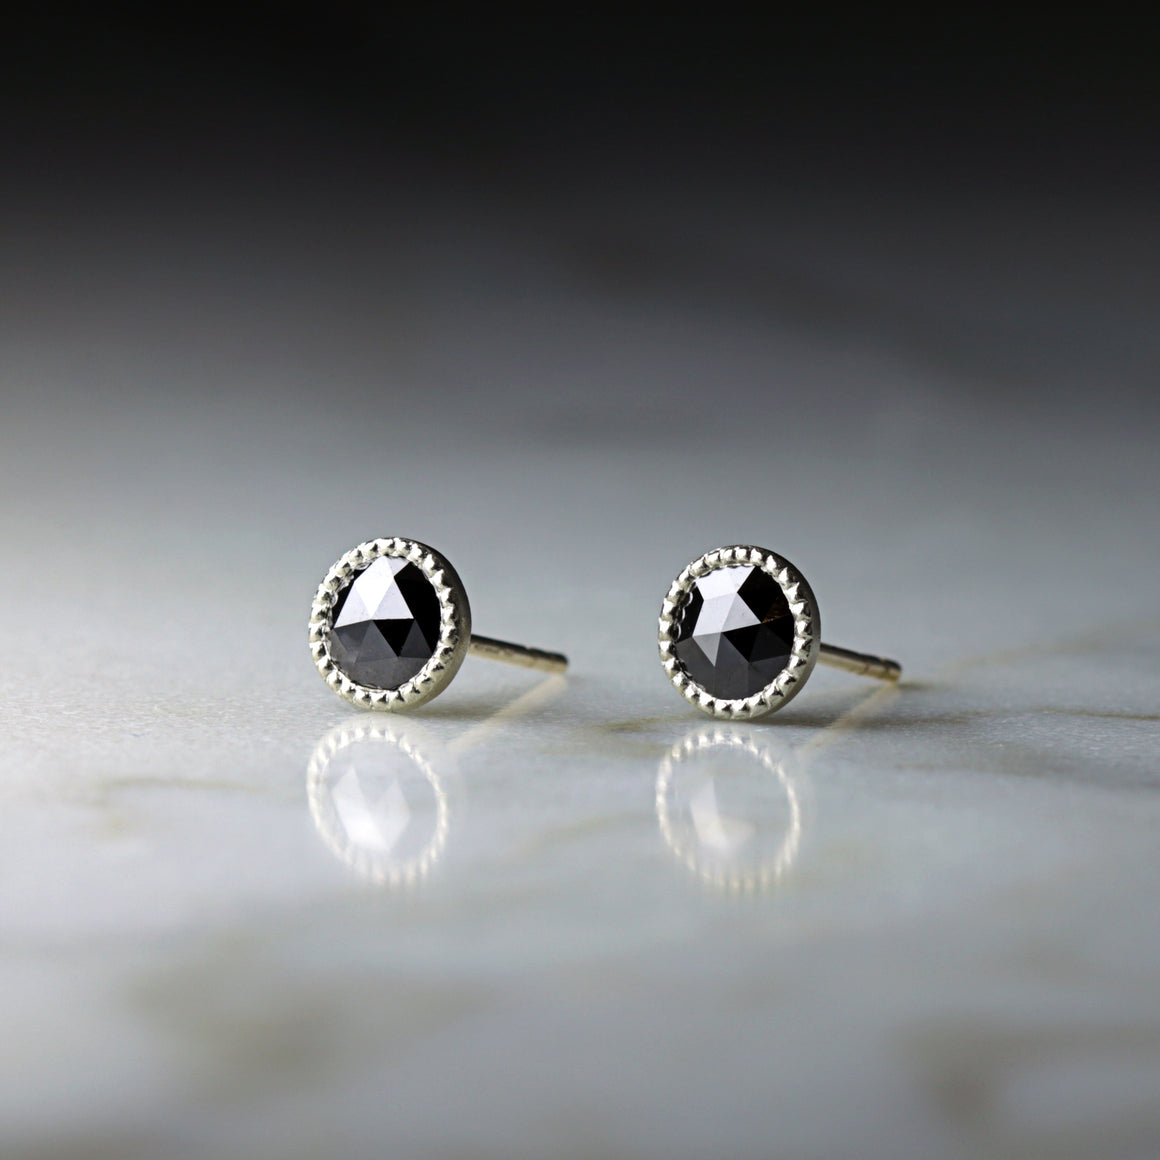 Black Diamond Rose Cut Stud Earrings in White Gold